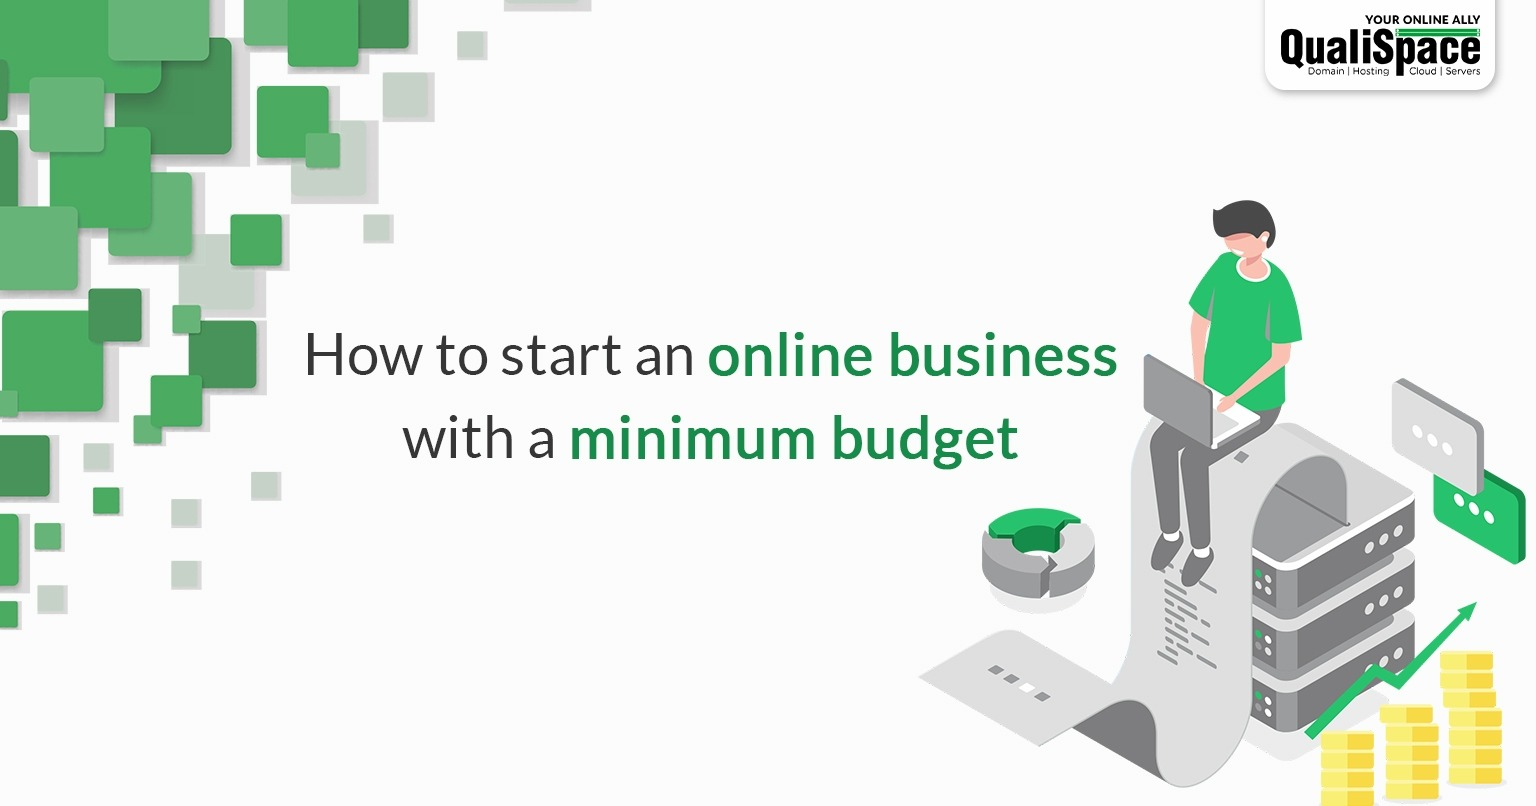 How to start an online business with a minimum budget